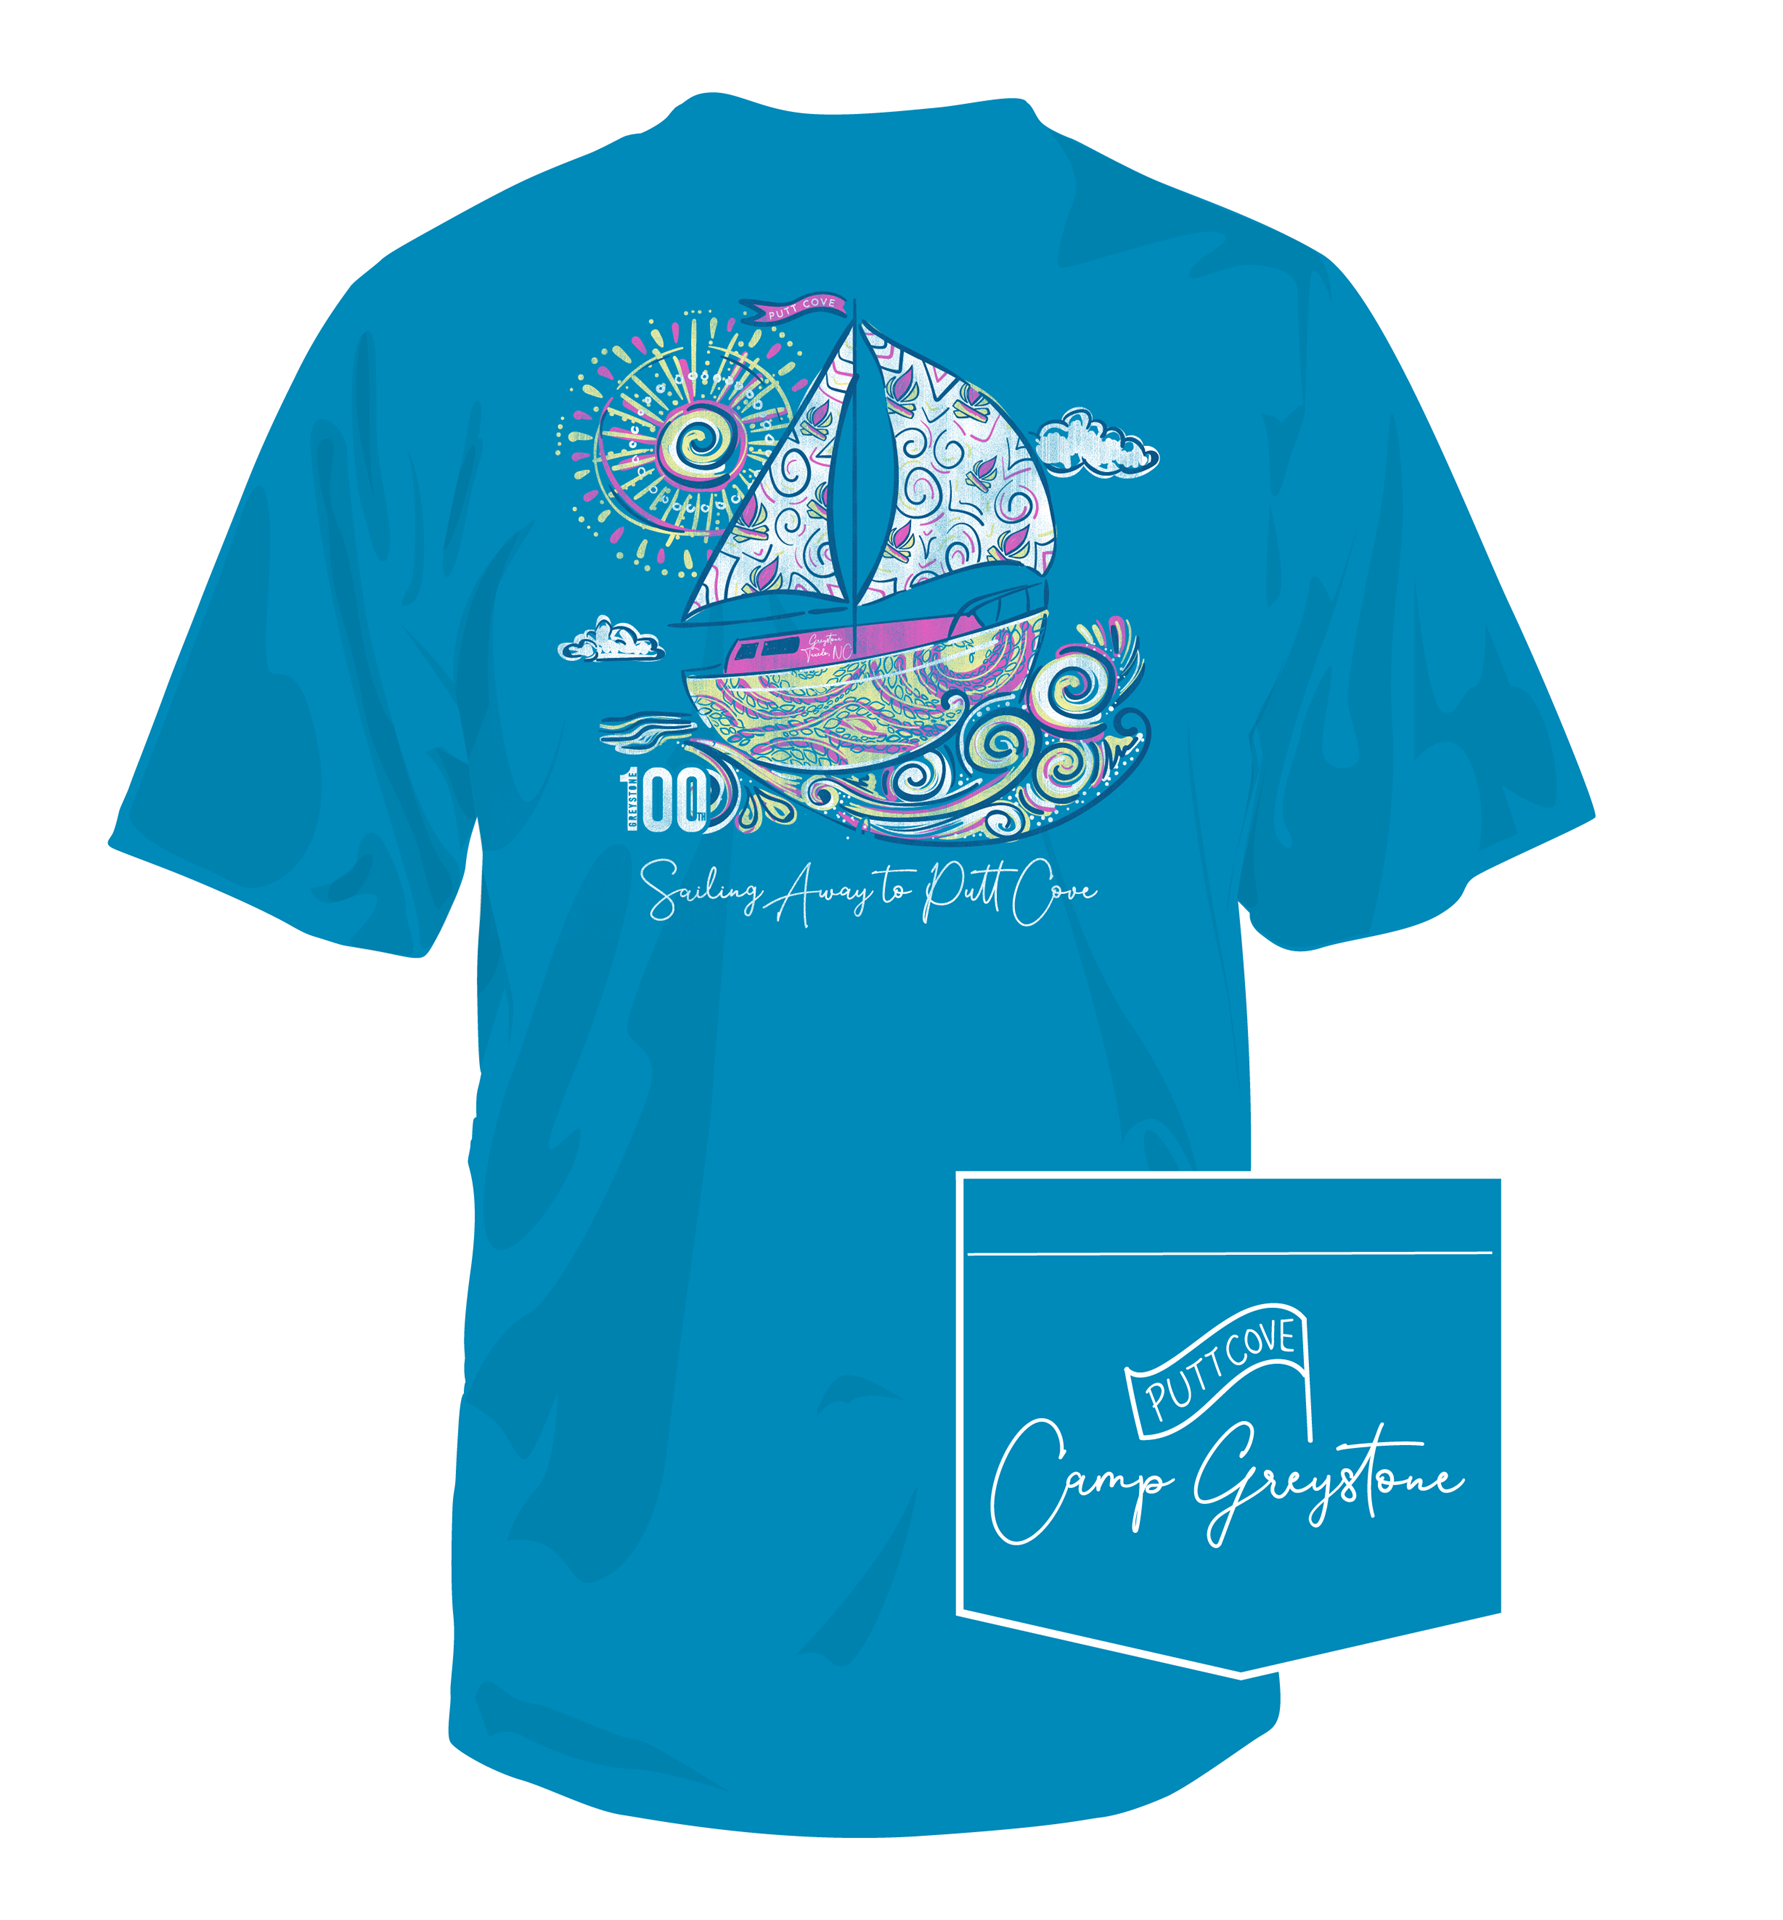 Picture of Sailing Program Shirt 2019 - YOUTH MED only